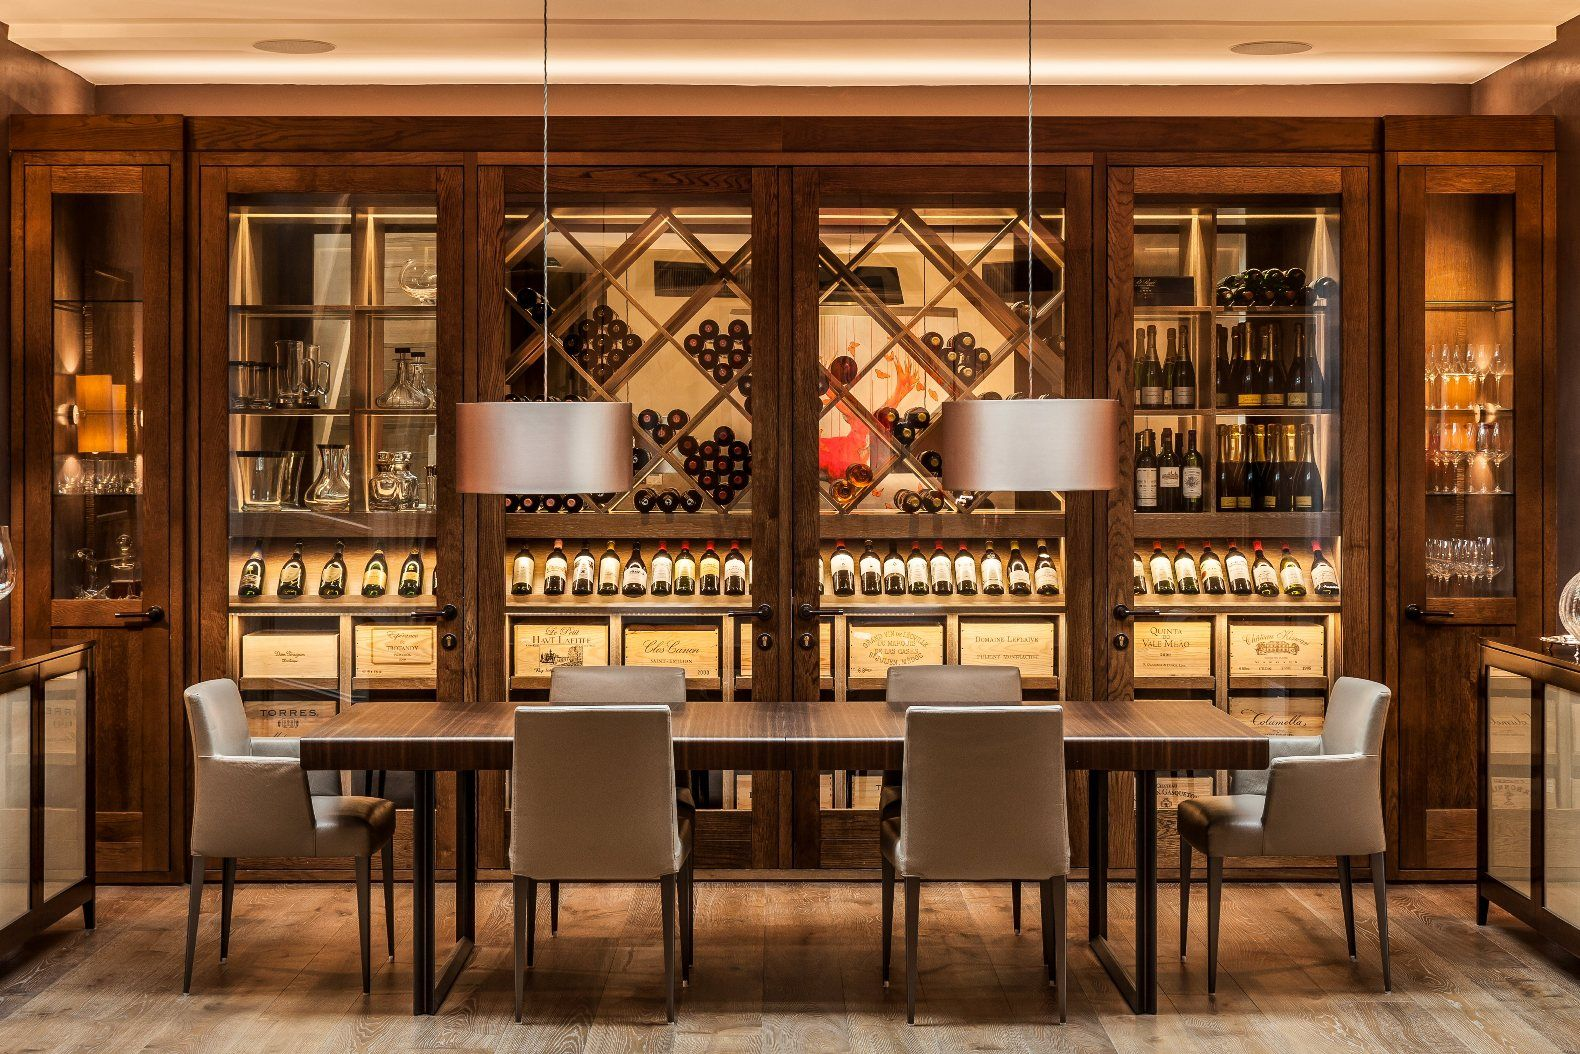 2. Fully conditioned stained Oak wine room